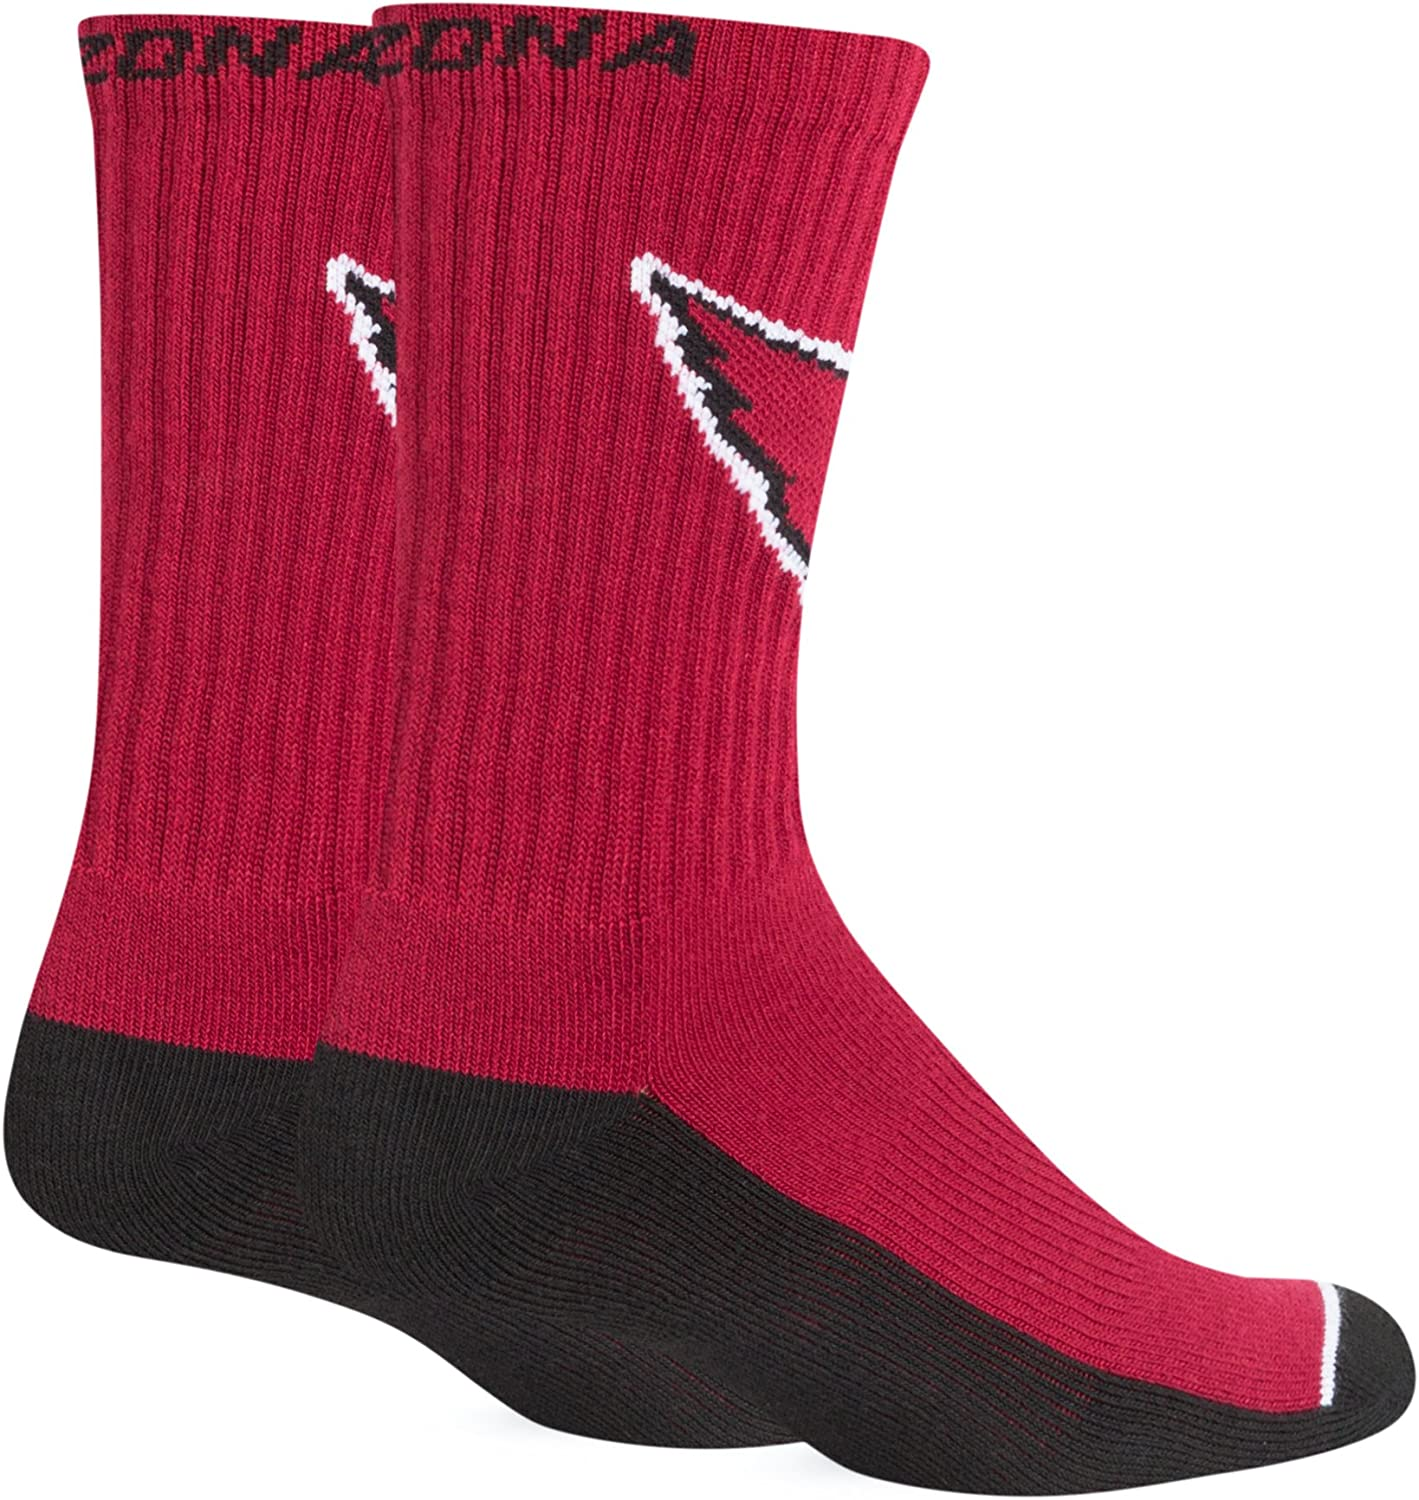 Team Color NFL Mens Arizona Cardinals OTS Rigby Sport Sock Large